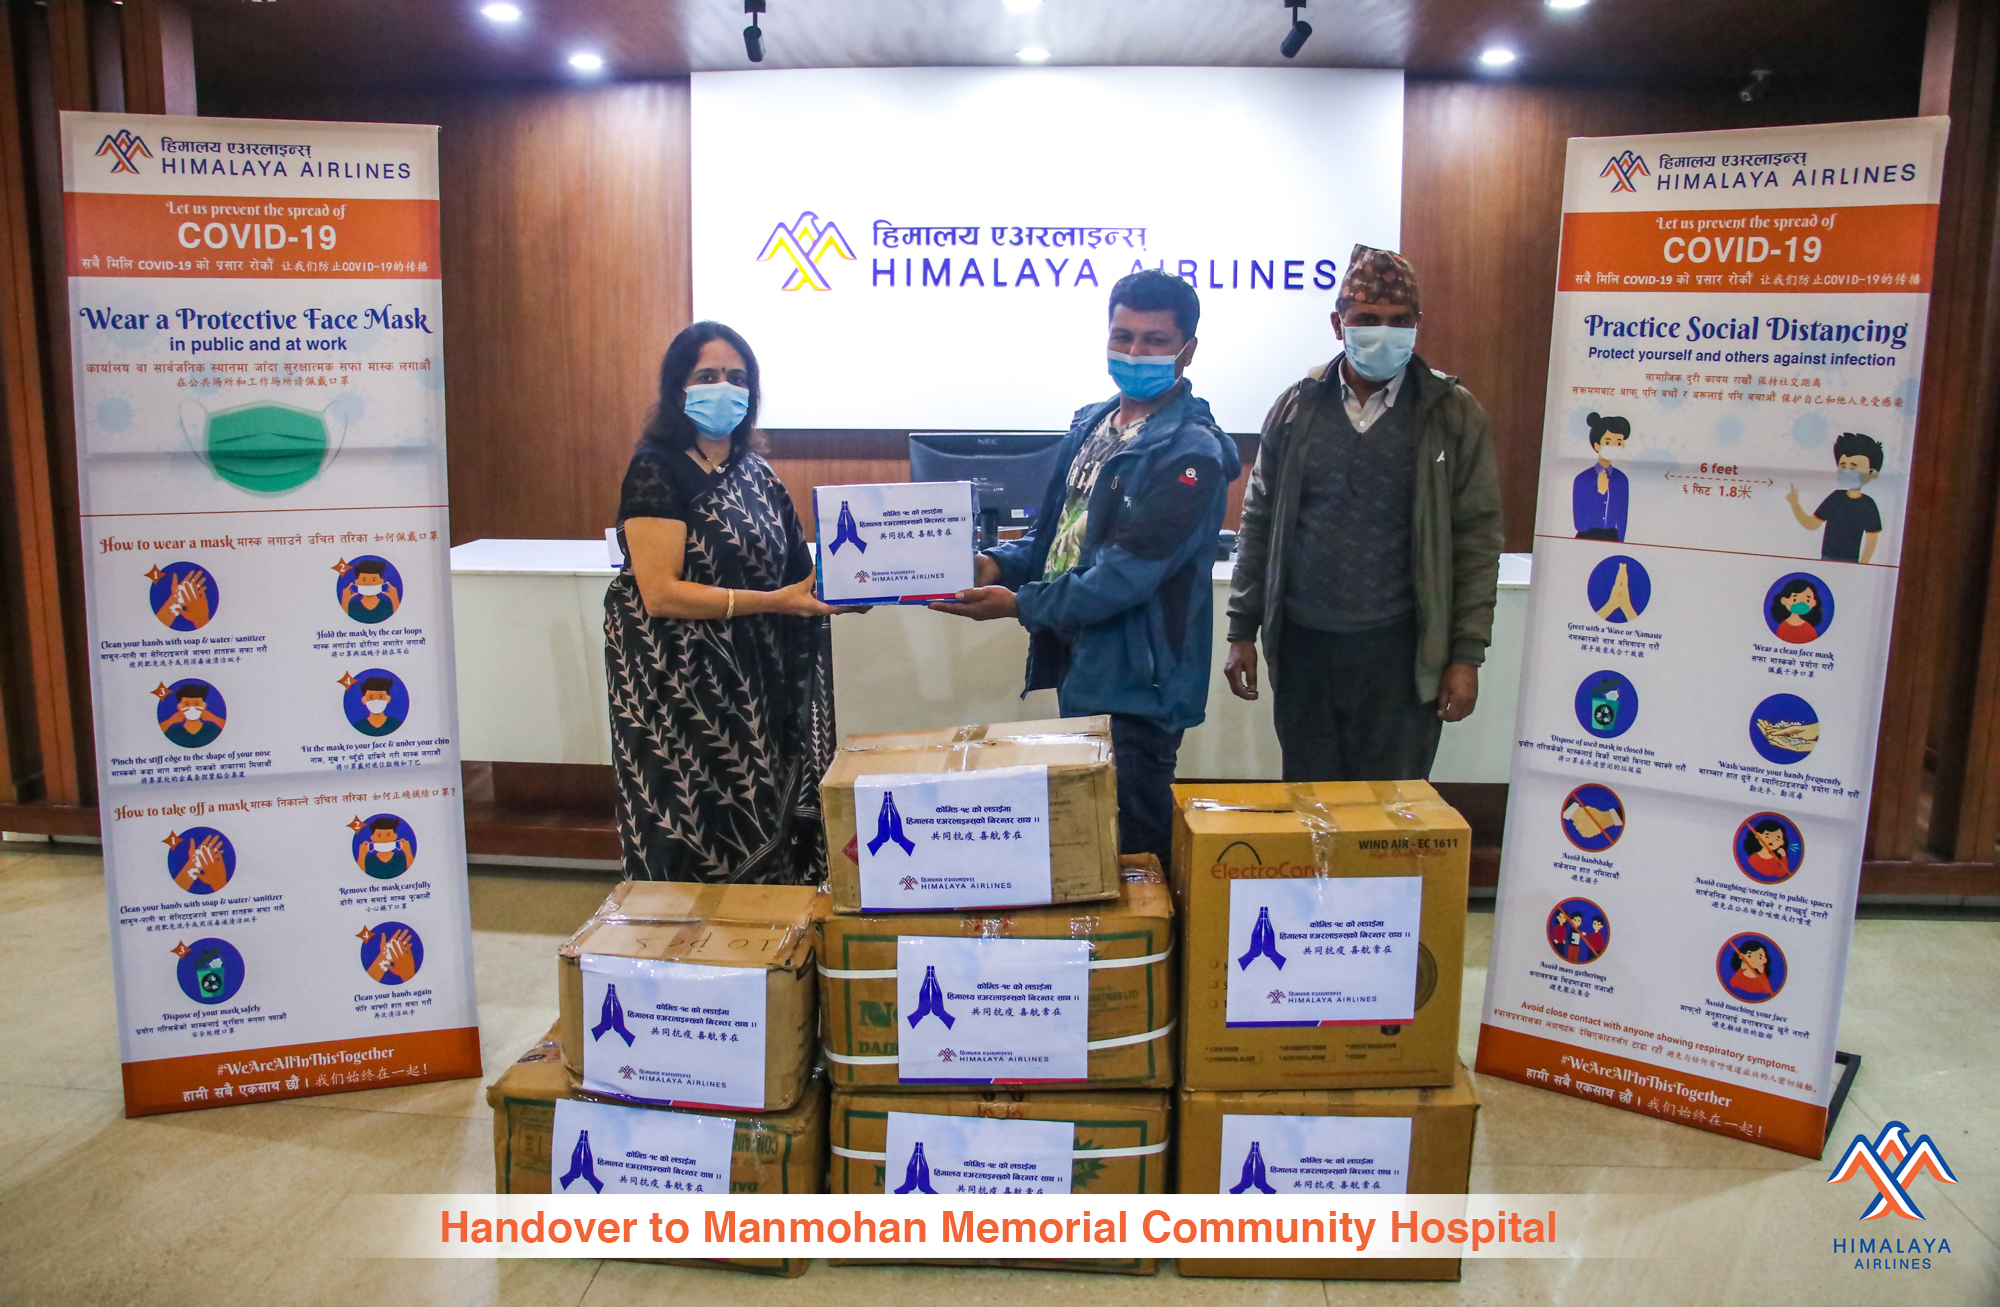 Ujjwala Dali, Head of Department for Brand and Service Improvement of Himalaya Airlines handing over the preventive medical supplies to the urna Bahadur Shahi, Acting Chairperson of Manmohan Memorial Community Hospital of Pharping. Photo Courtesy: Himalaya Airlines